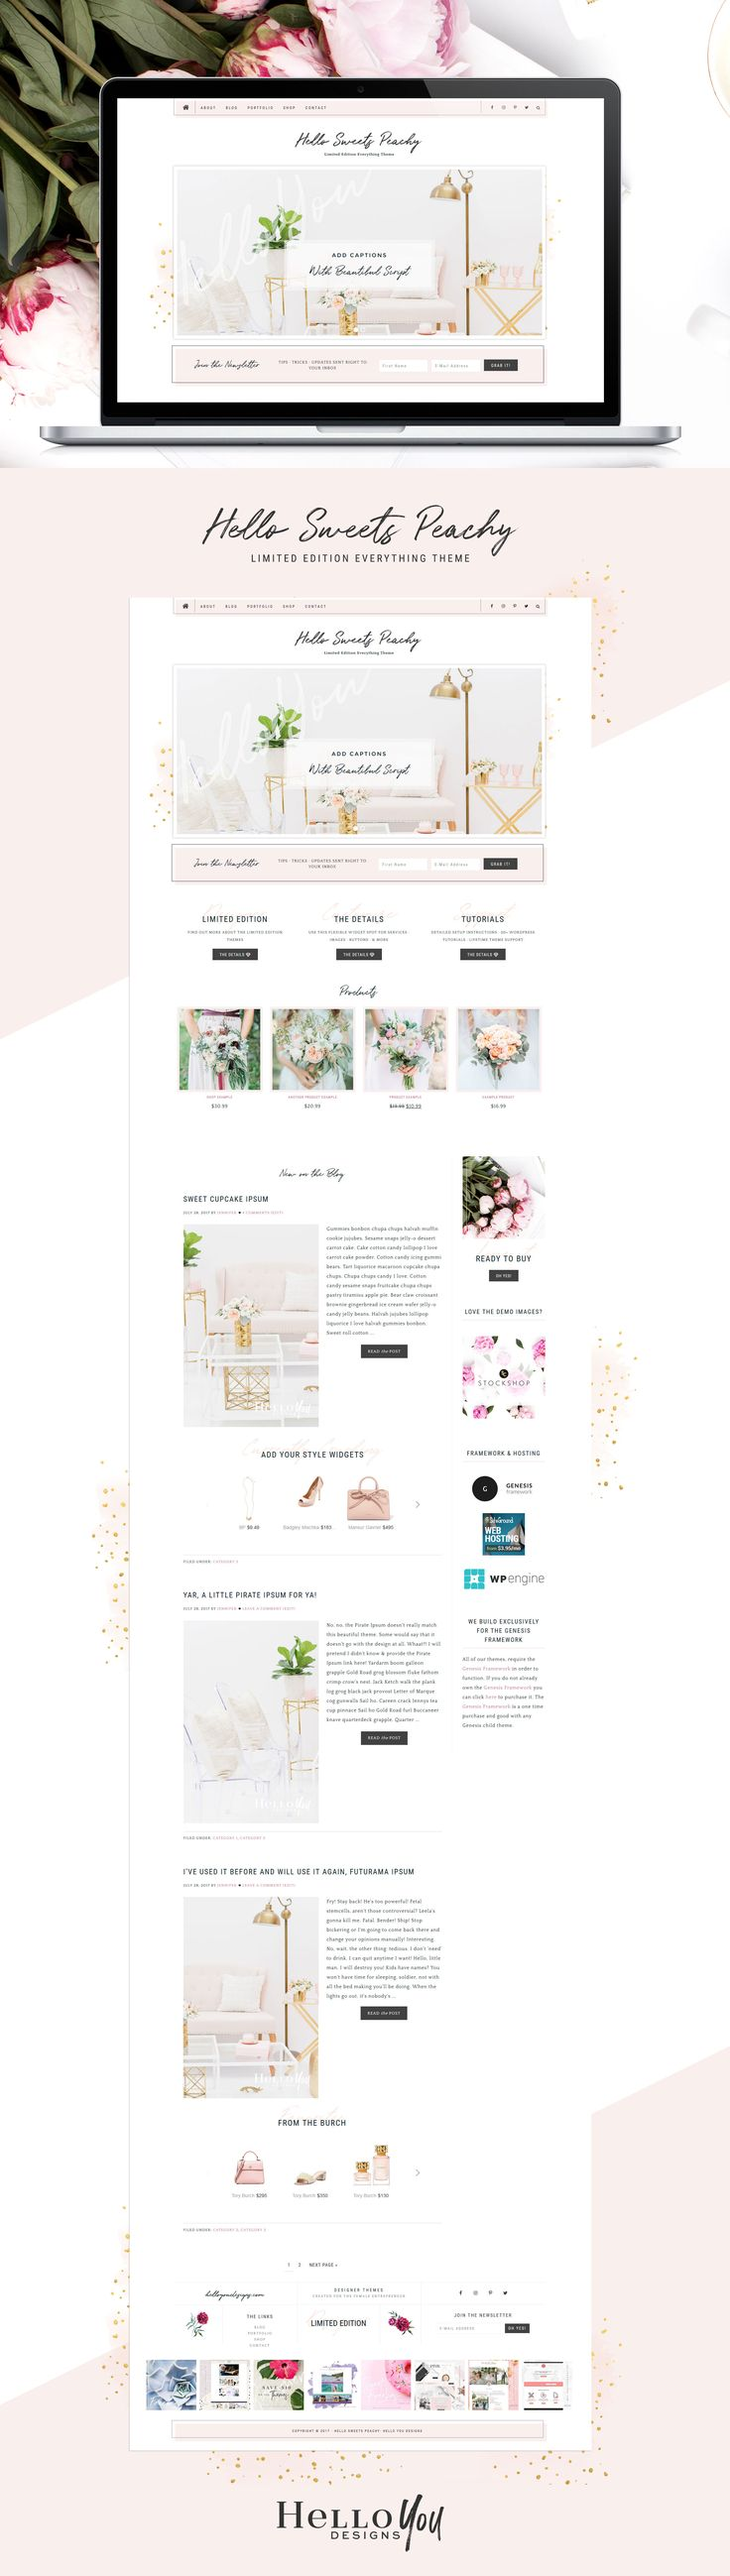 Sweets Peachy WordPress Theme